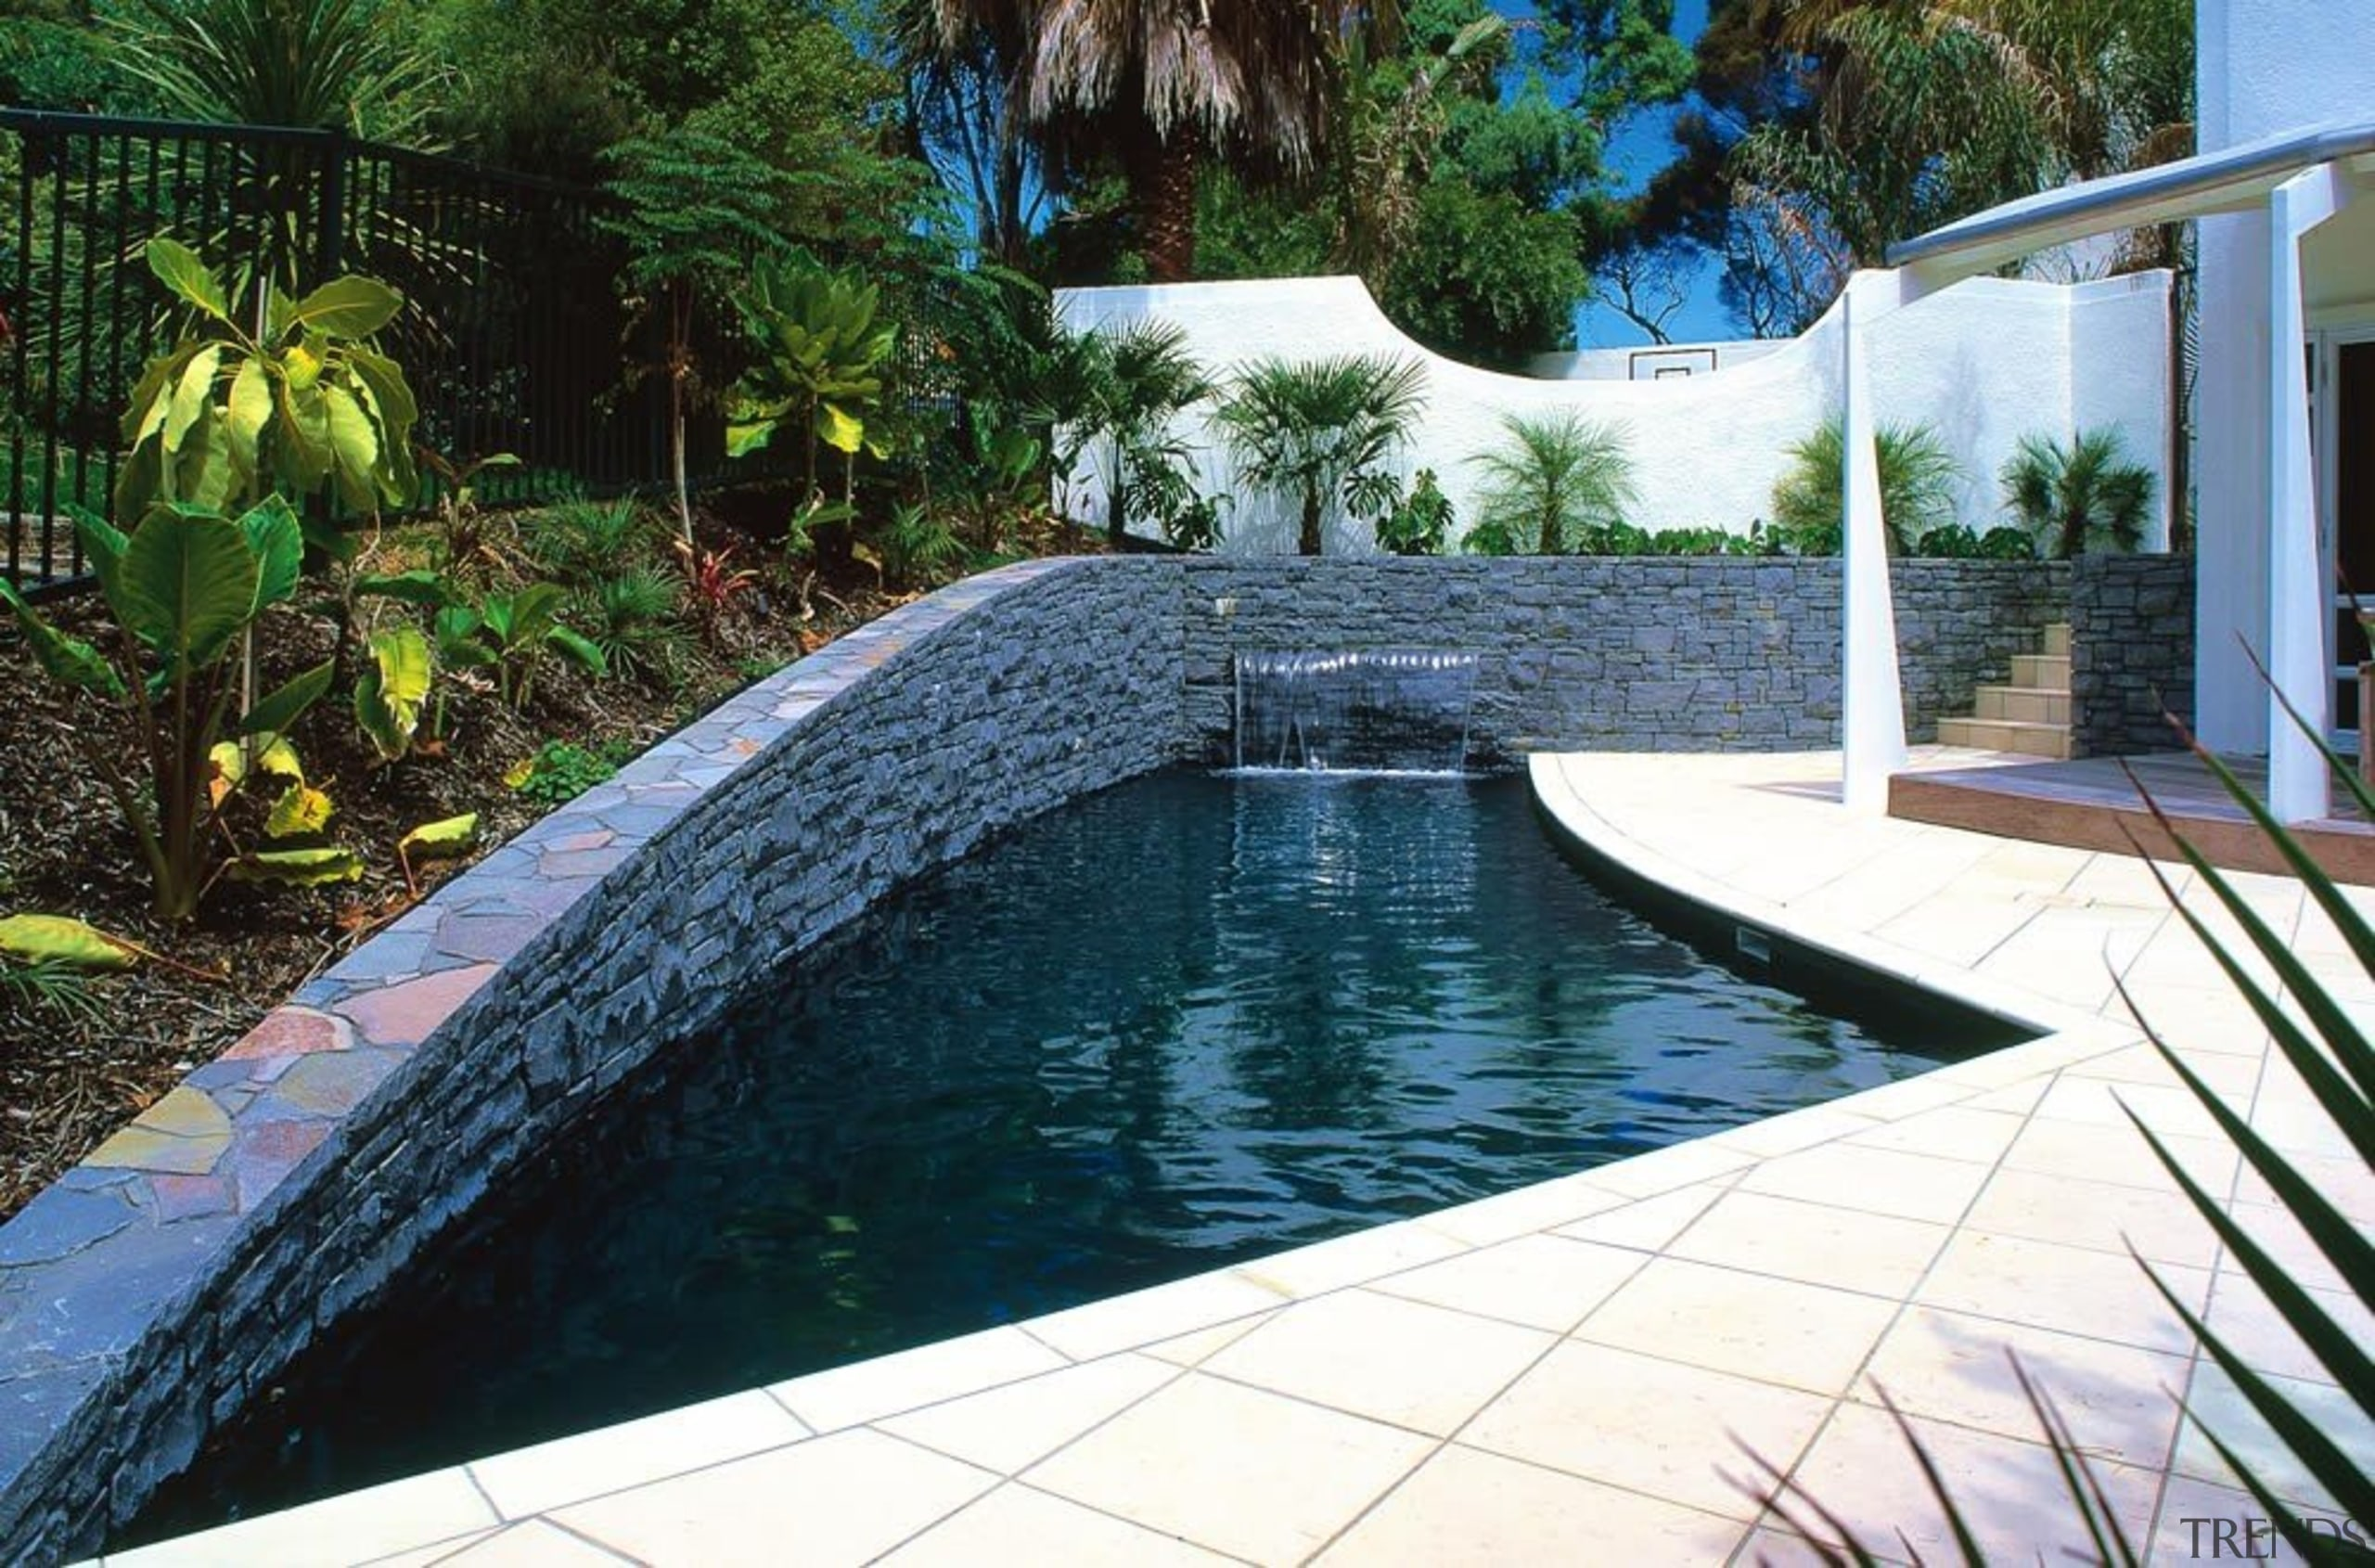 Residential - Residential - backyard   estate   backyard, estate, landscaping, leisure, outdoor structure, pond, property, real estate, resort, swimming pool, water, water feature, water resources, watercourse, yard